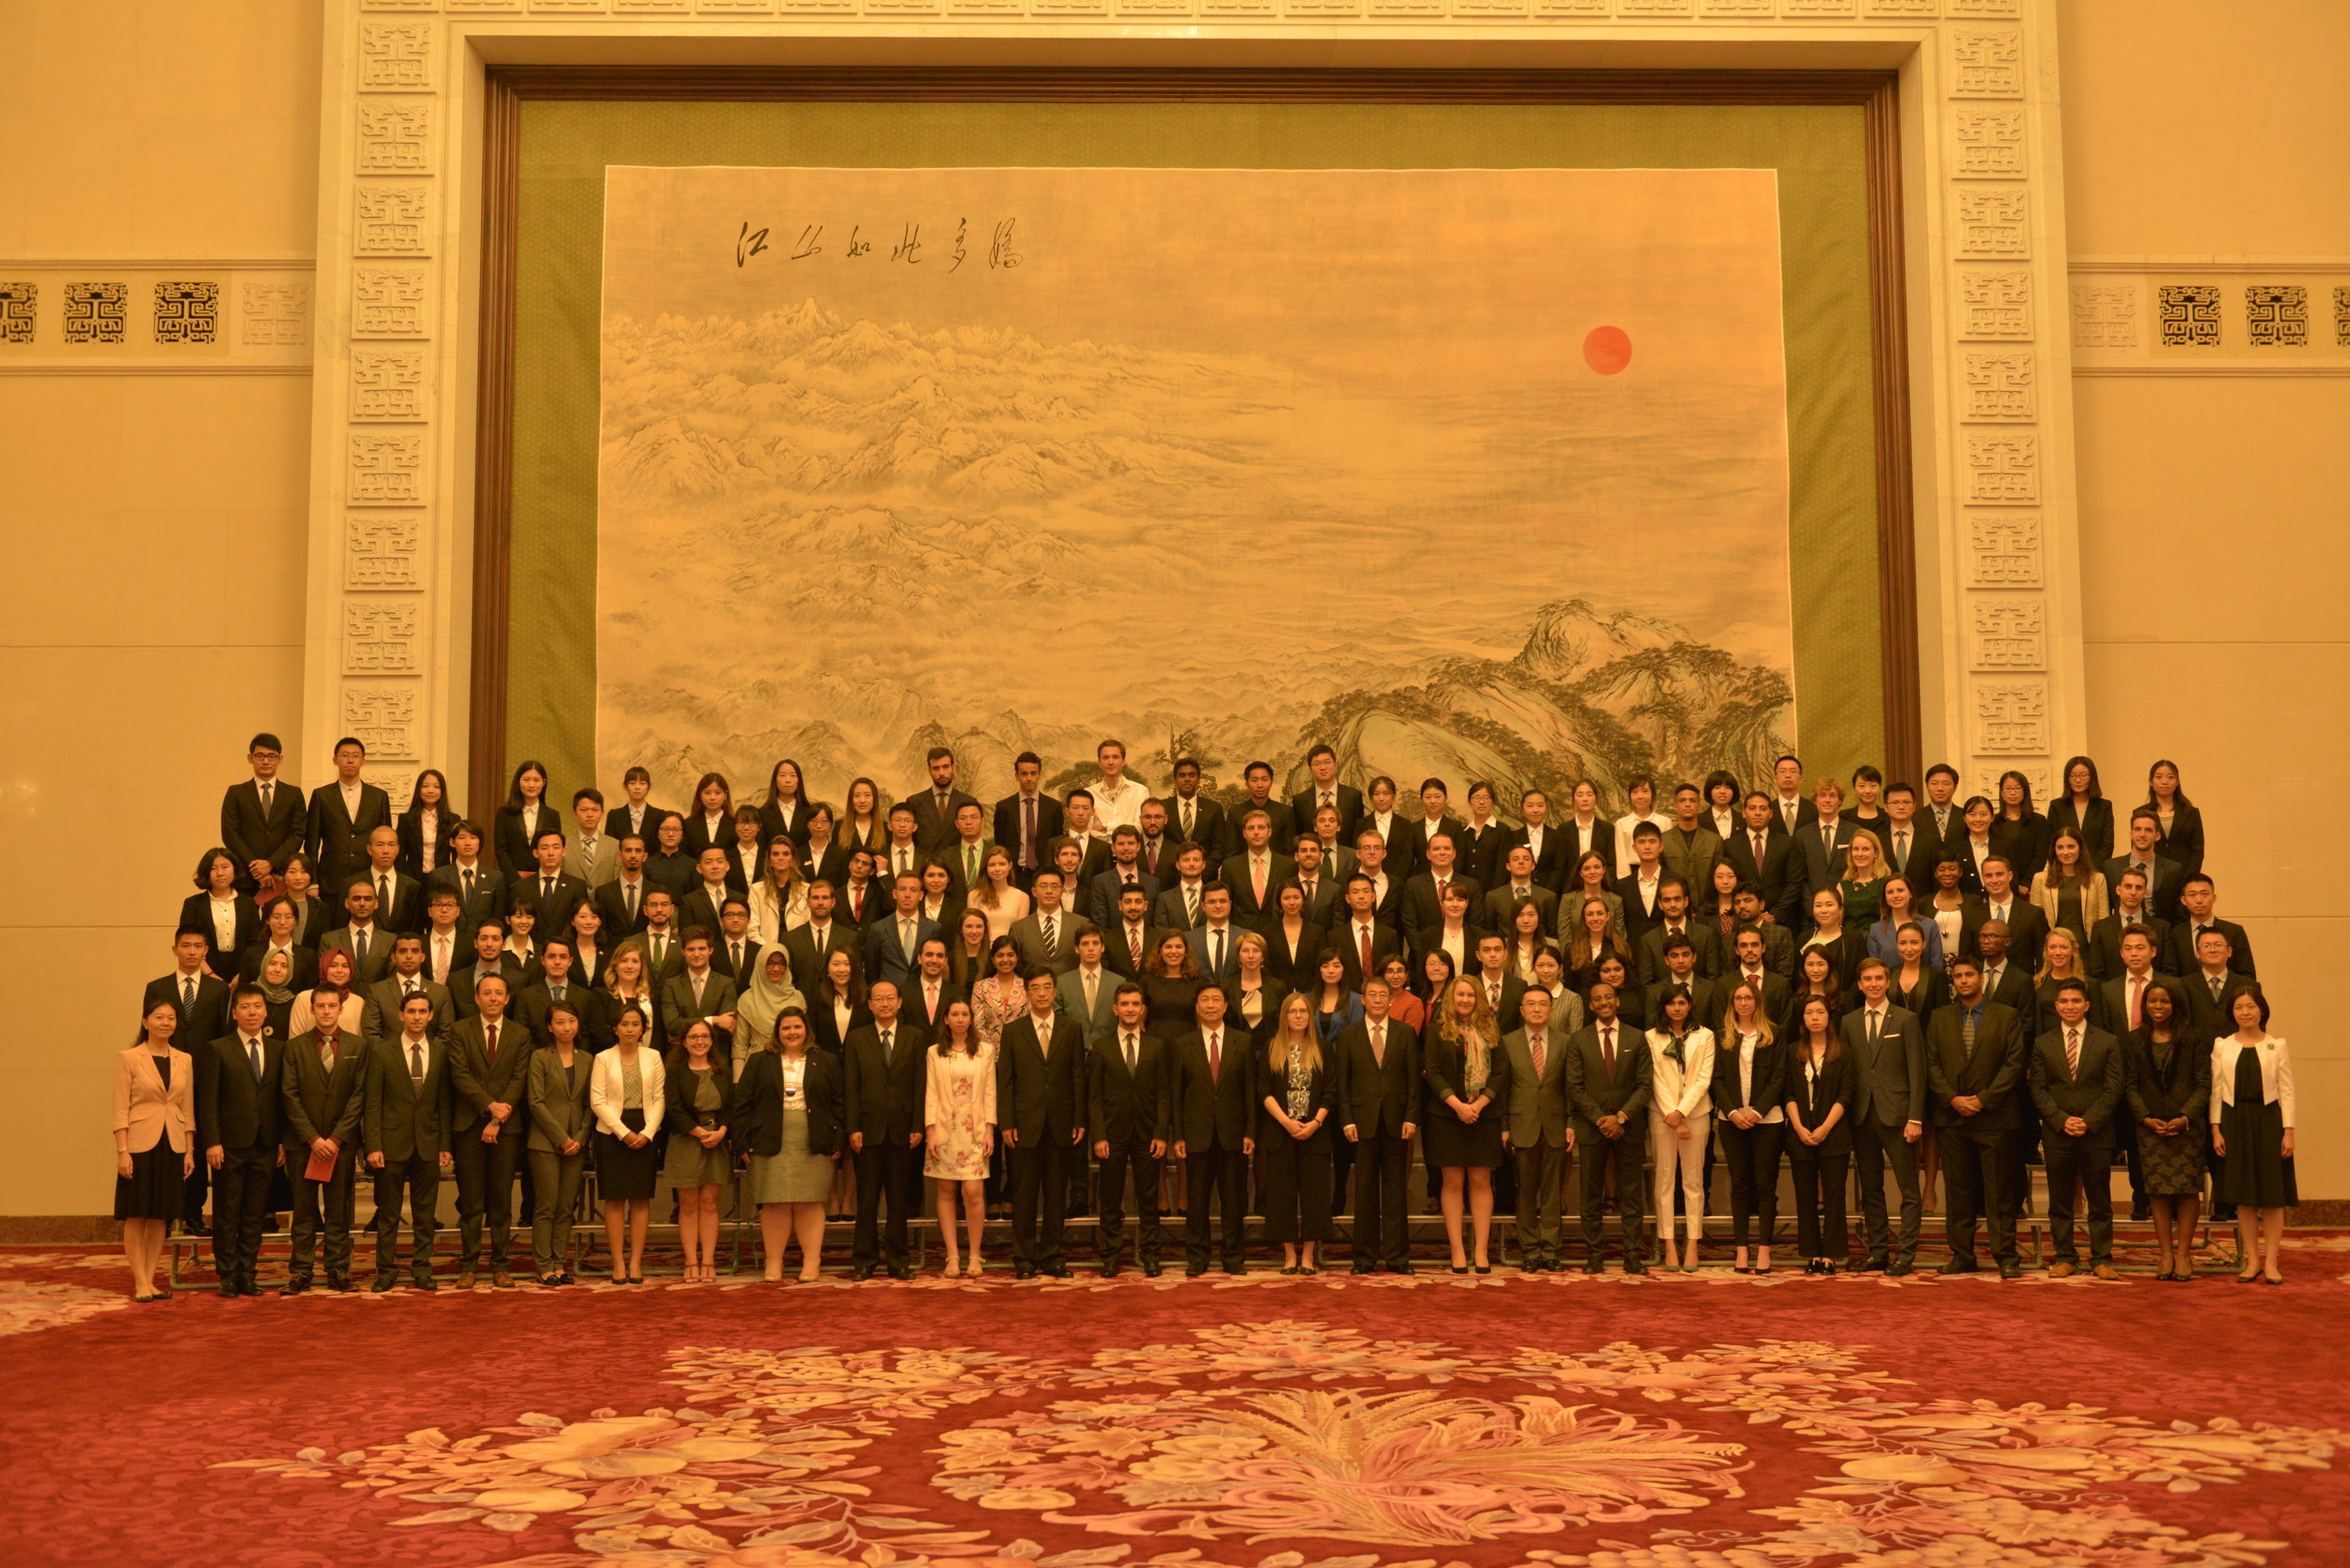 photo credit: y20 china organiZing committee